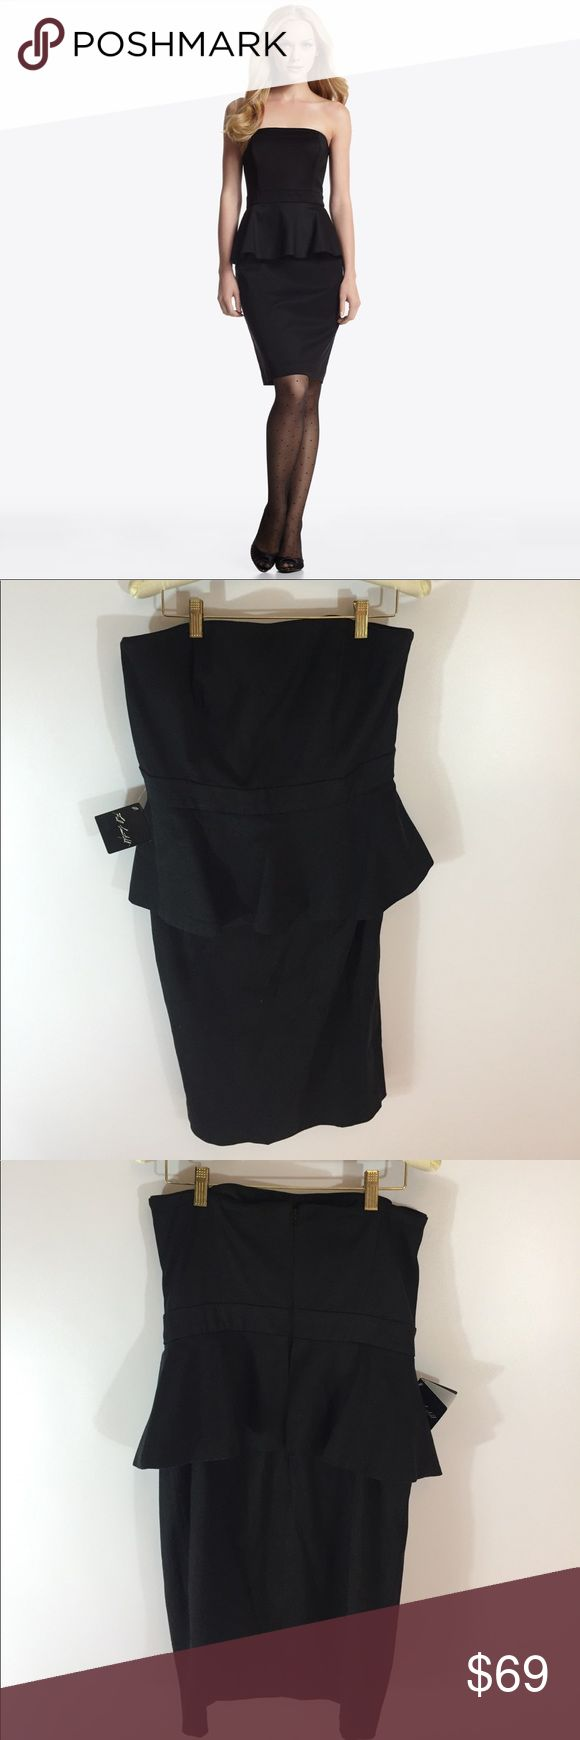 "NWT WHBM Peplum Strapless Black Dress So cute and Brand New with tags! Total lenght 32"" White House Black Market Dresses Strapless"